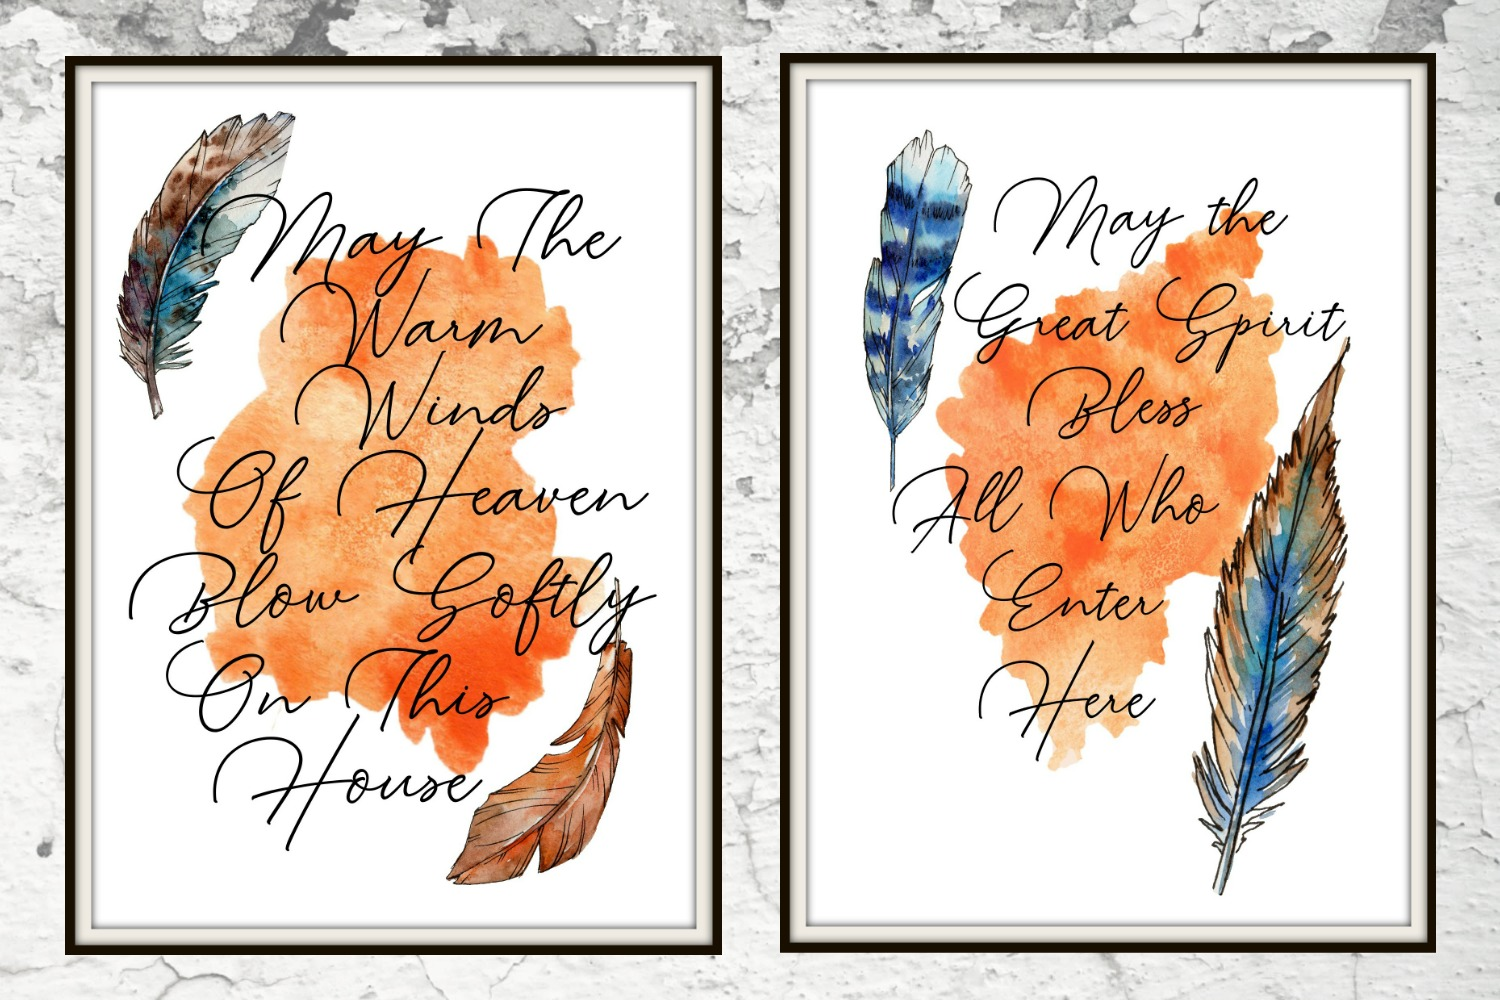 photo regarding Native American Designs Printable identified as Indigenous American Blessings - Absolutely free Printable Artwork and Wallpaper